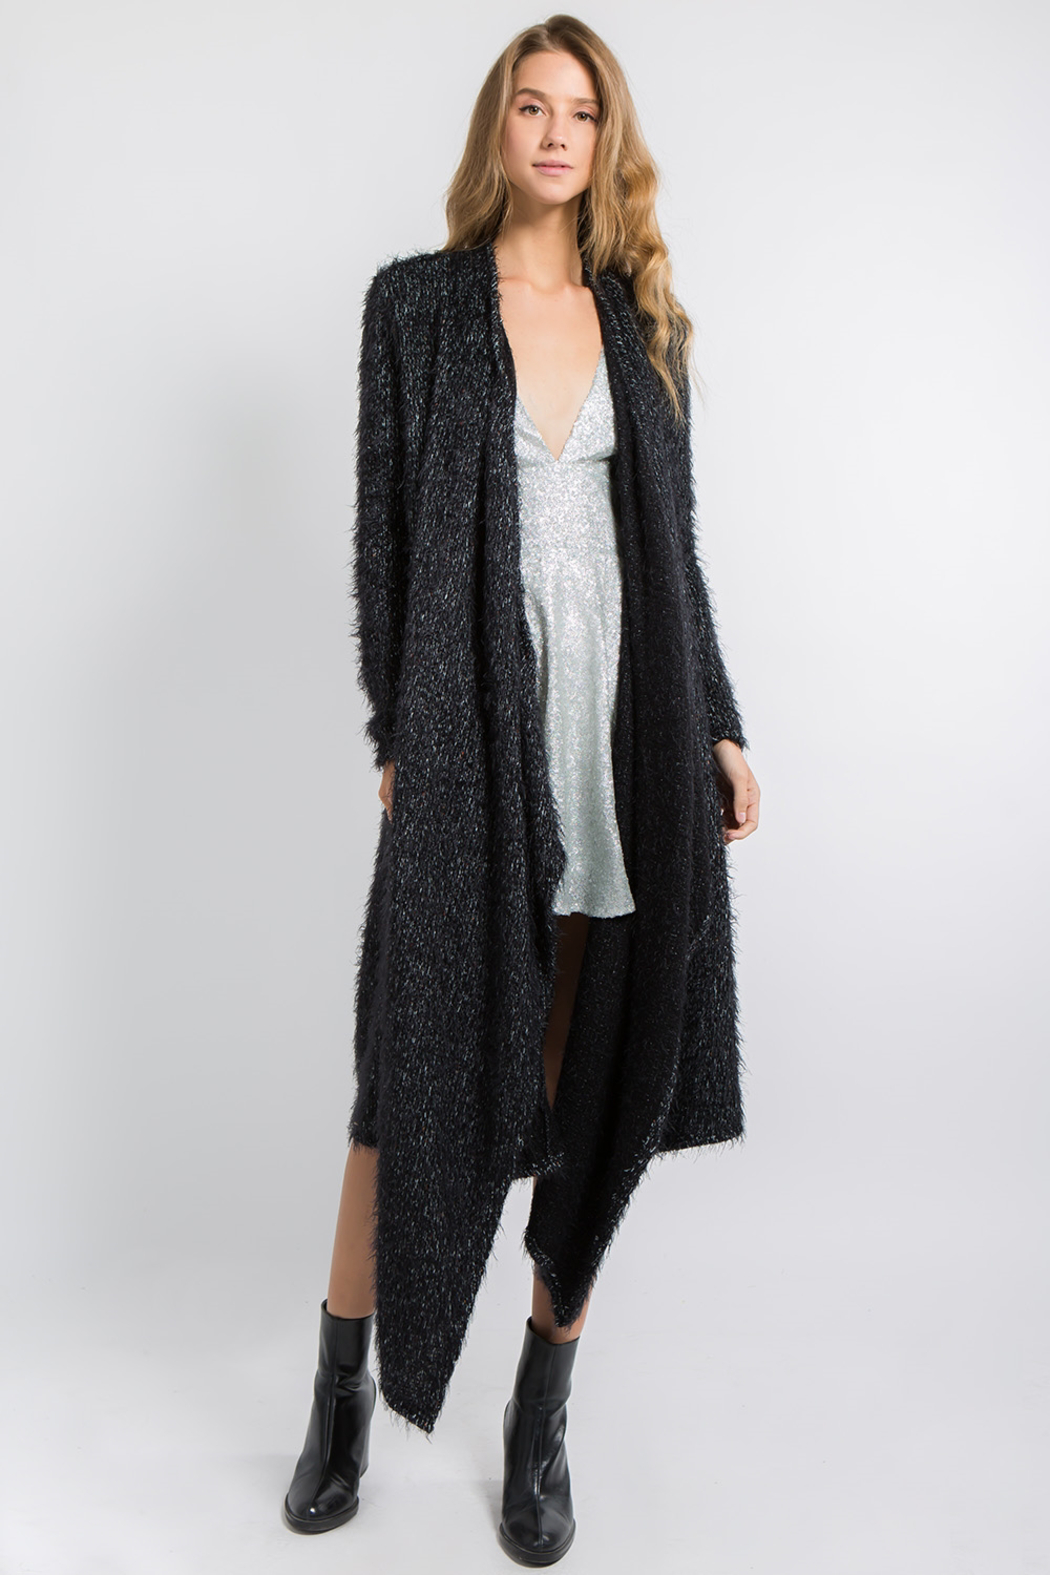 FANCO Black Fuzzy Cardigan - Front Cropped Image